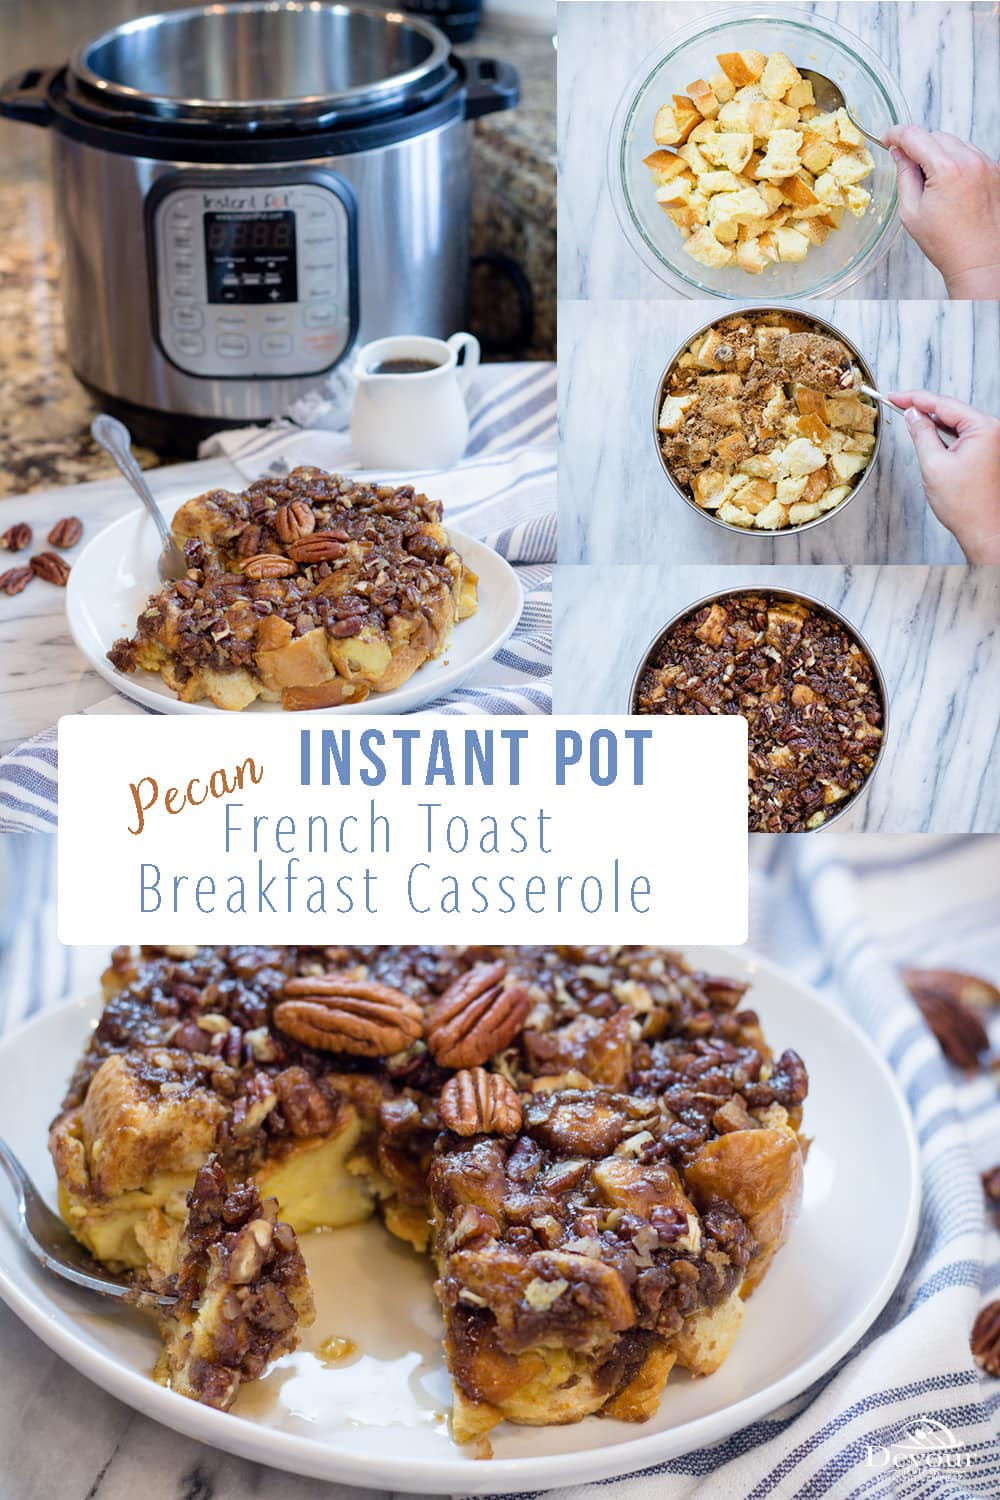 With all the Fall flavors this French Toast Breakfast Casserole stuffed with Cinnamon and Pecans is a favorite Instant Pot Breakfast. Your taste buds will be drooling over this easy Instant Pot Breakfast Casserole made using the Pot in Pot method. Using an egg and milk base with french bread and topped with a pecan filled brown sugar cinnamon crumble. #instantpot #instantpotrecipe #yum #breakfast #breakfastrecipe #devourdinner #easybreakfast #recipe #recipes #easybreakfastrecipe #food #foodie